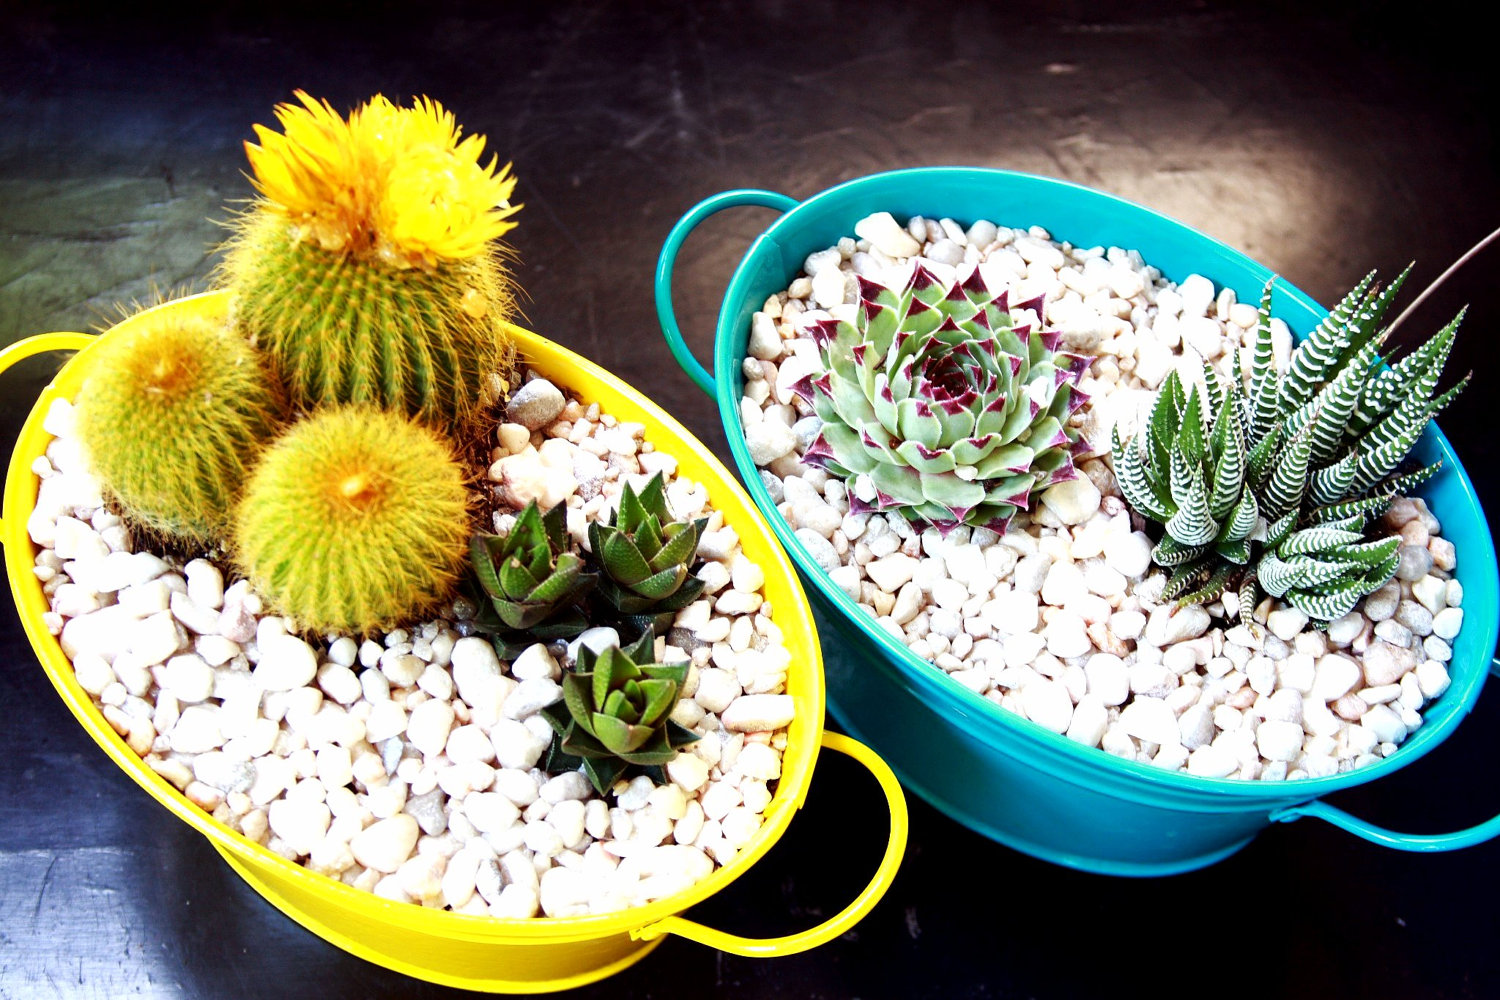 Simple-wedding-centerpieces-for-a-handcrafted-wedding-desert-succulents.original